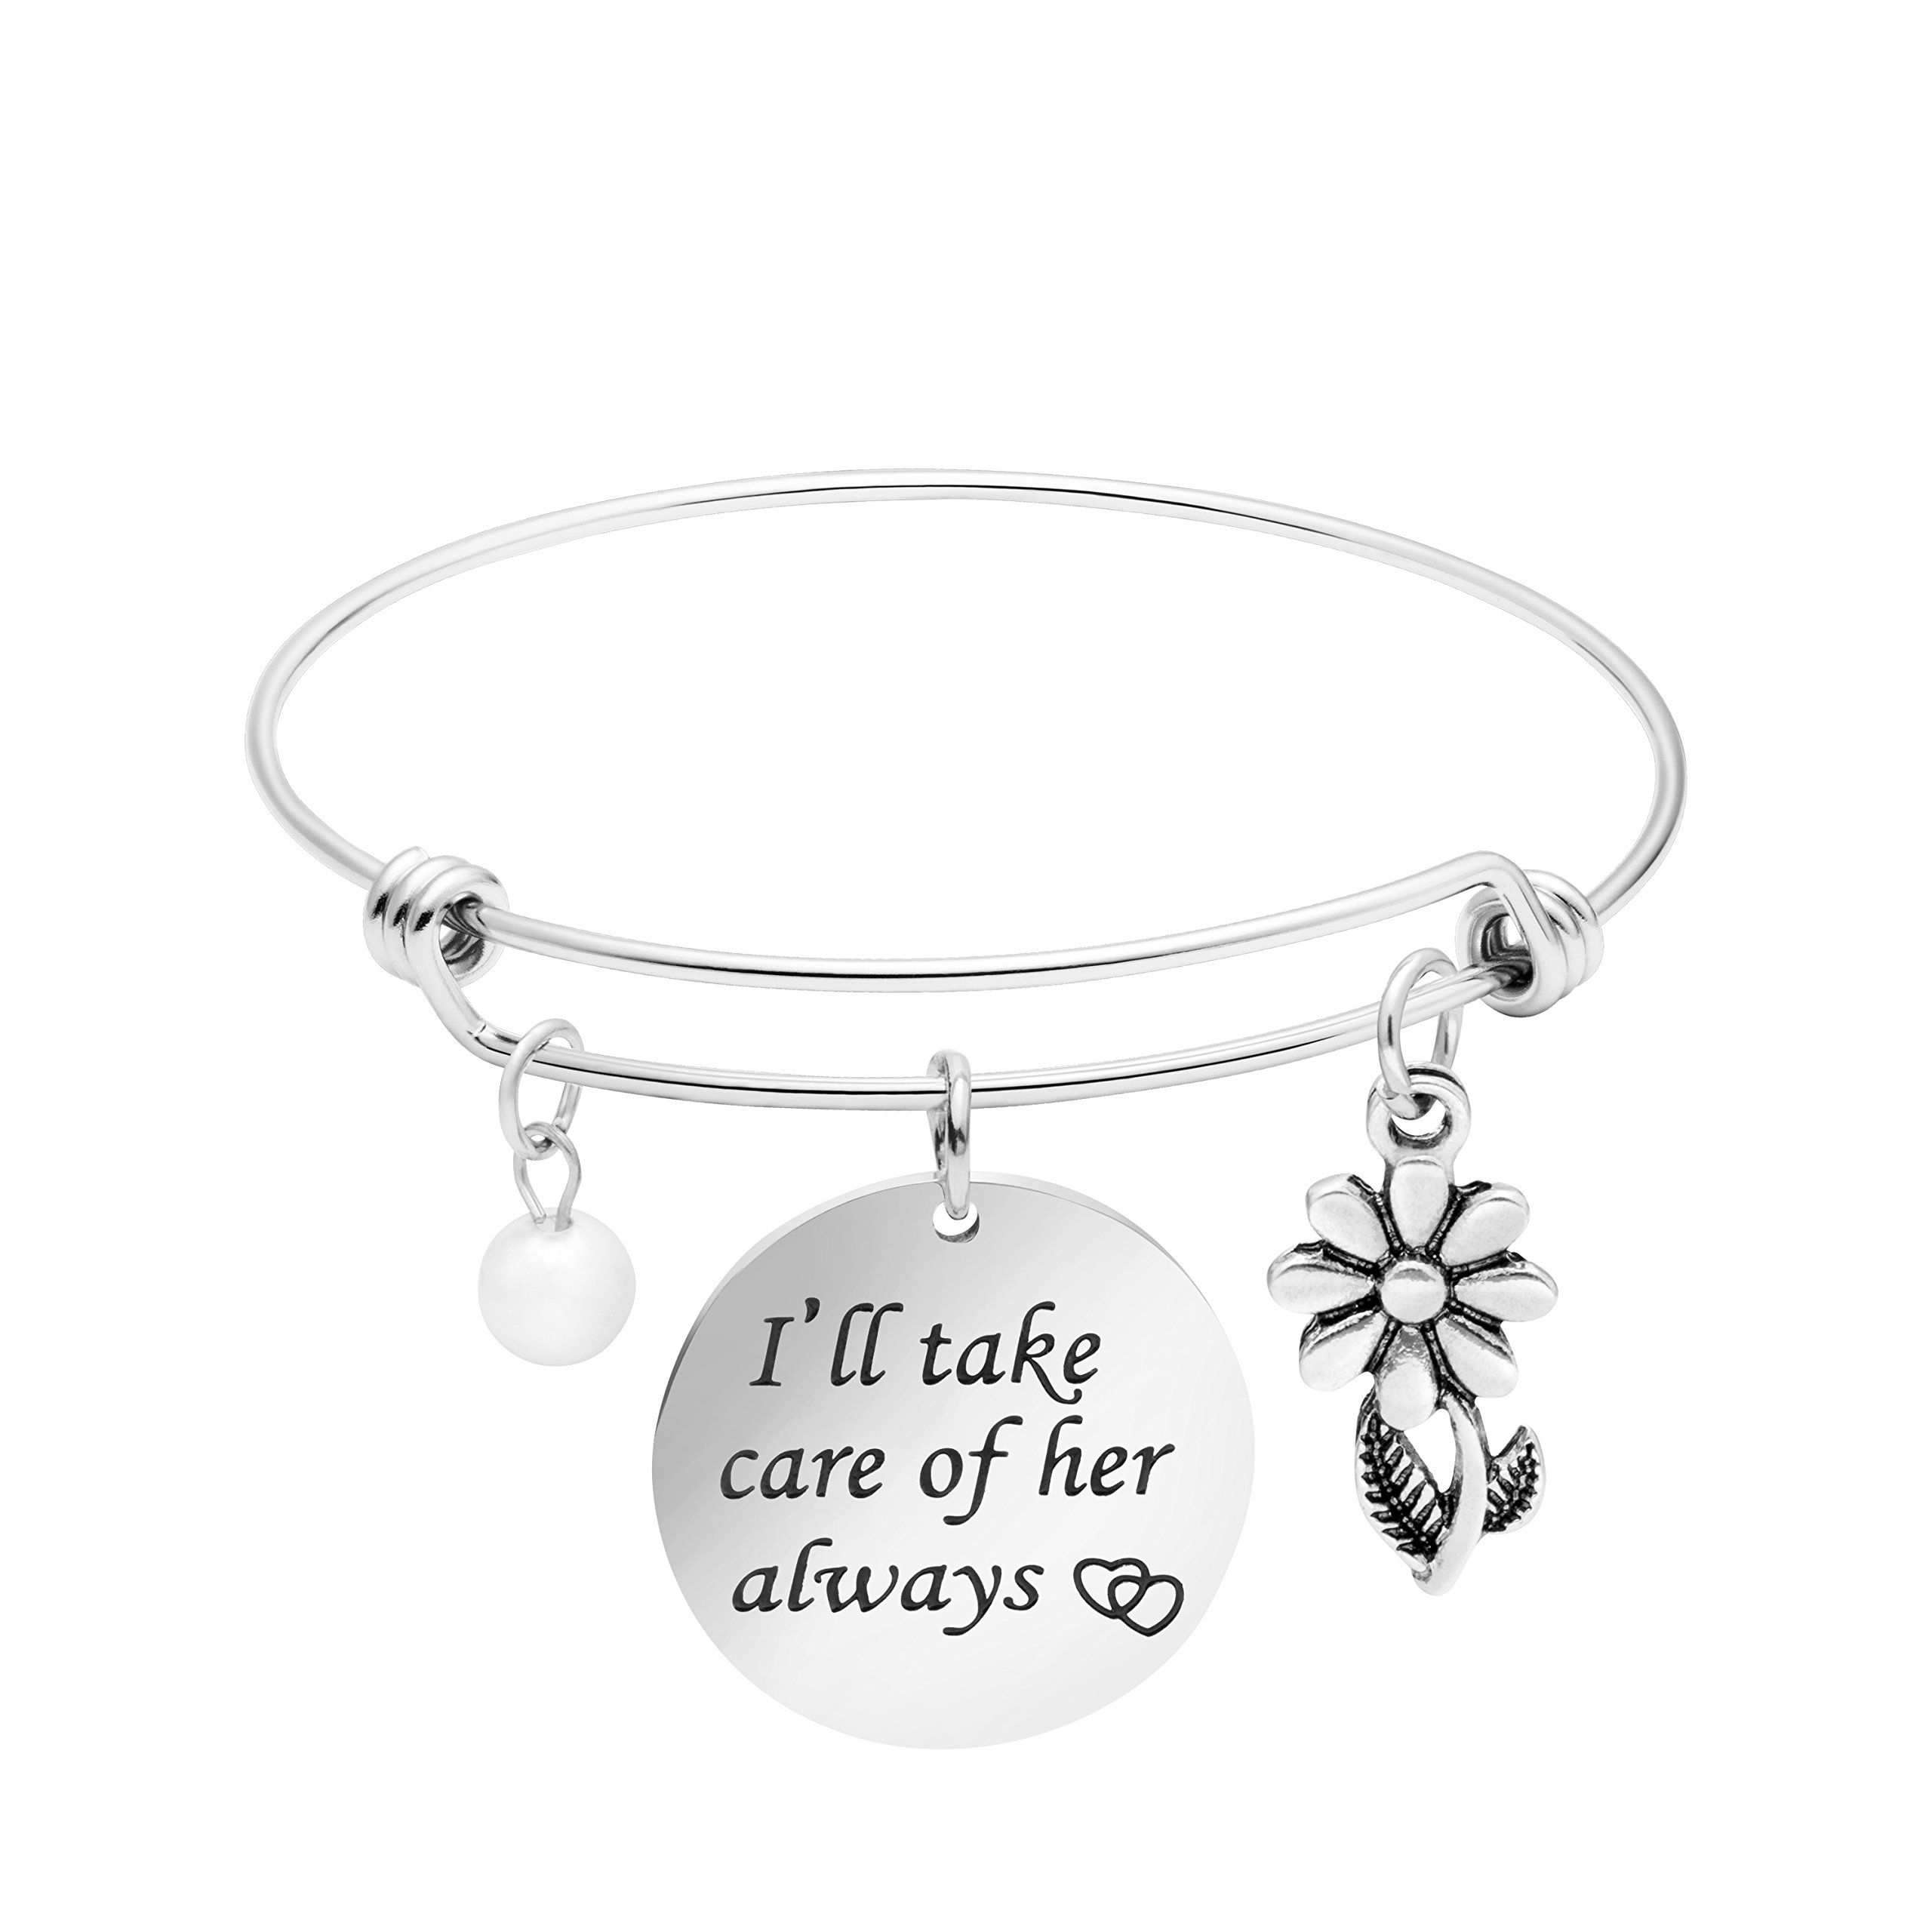 Yiyang Mother in Law Bracelet Bride Gift for Her I'll take care of her always Expandable Bangle Jewelry